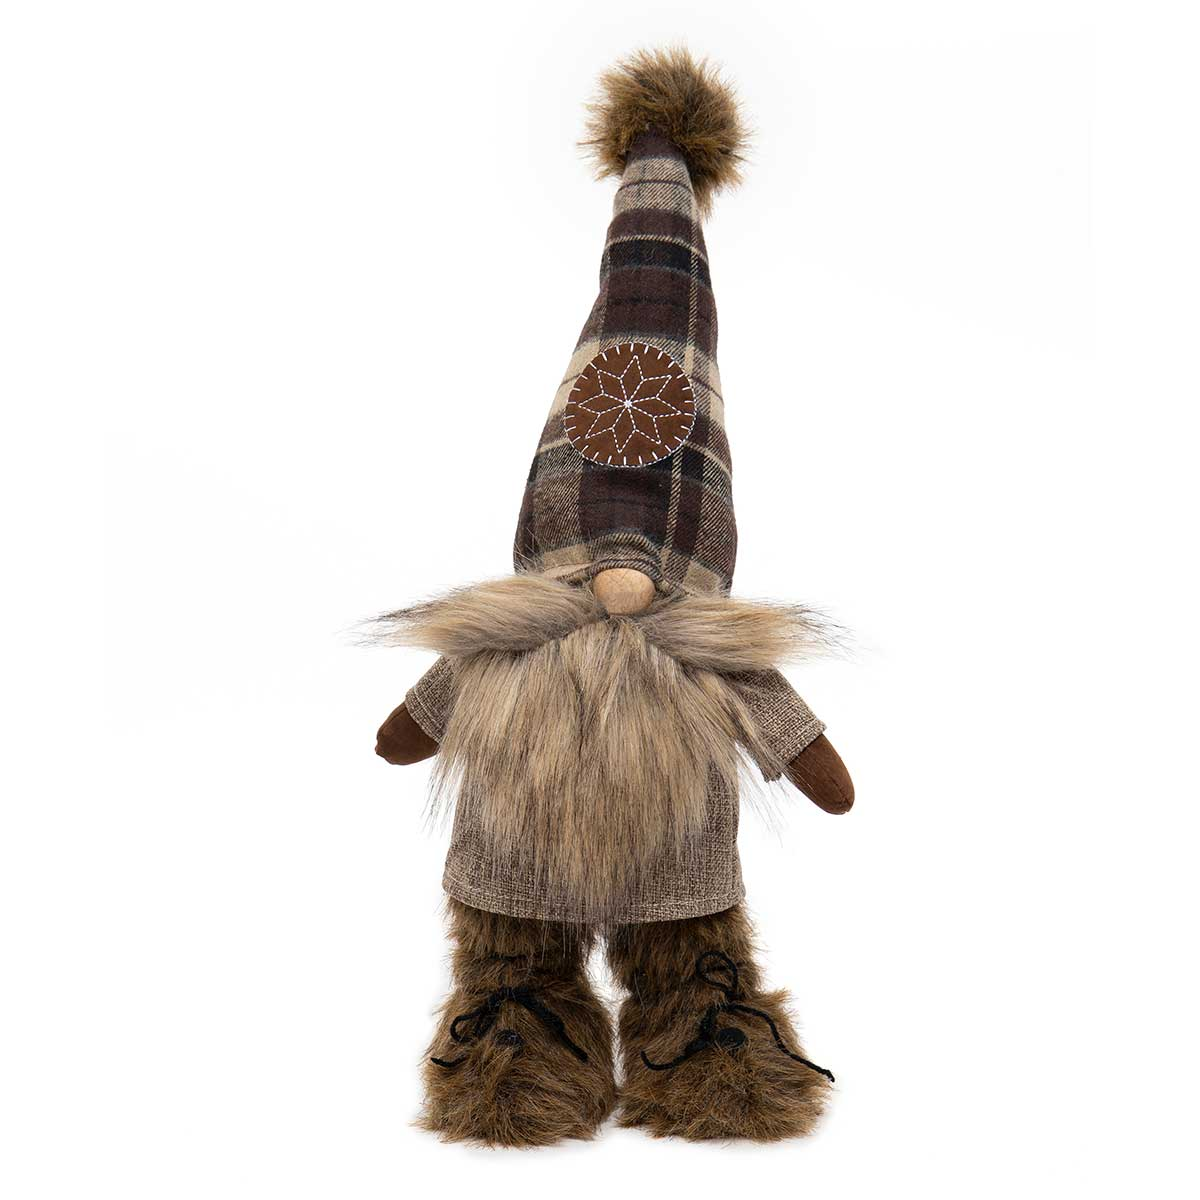 BROWN NORTHWOODS STANDING GNOME